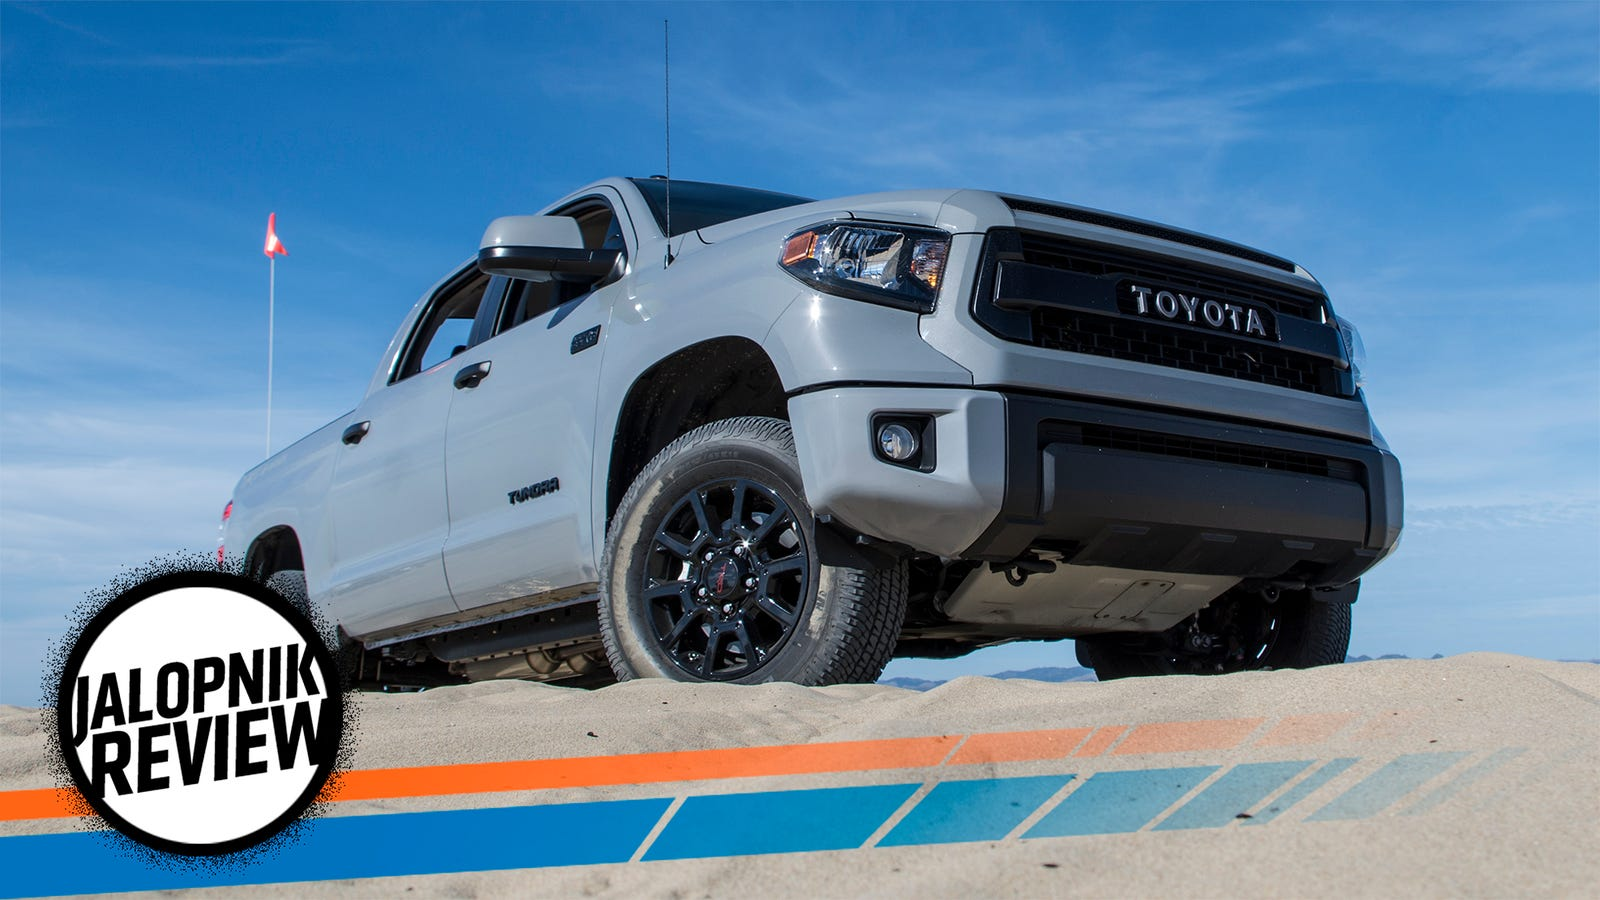 2017 Tacoma Trd Sport Price >> The 2017 Toyota Tundra TRD Pro Is The Best Version Of An Honest Old Truck